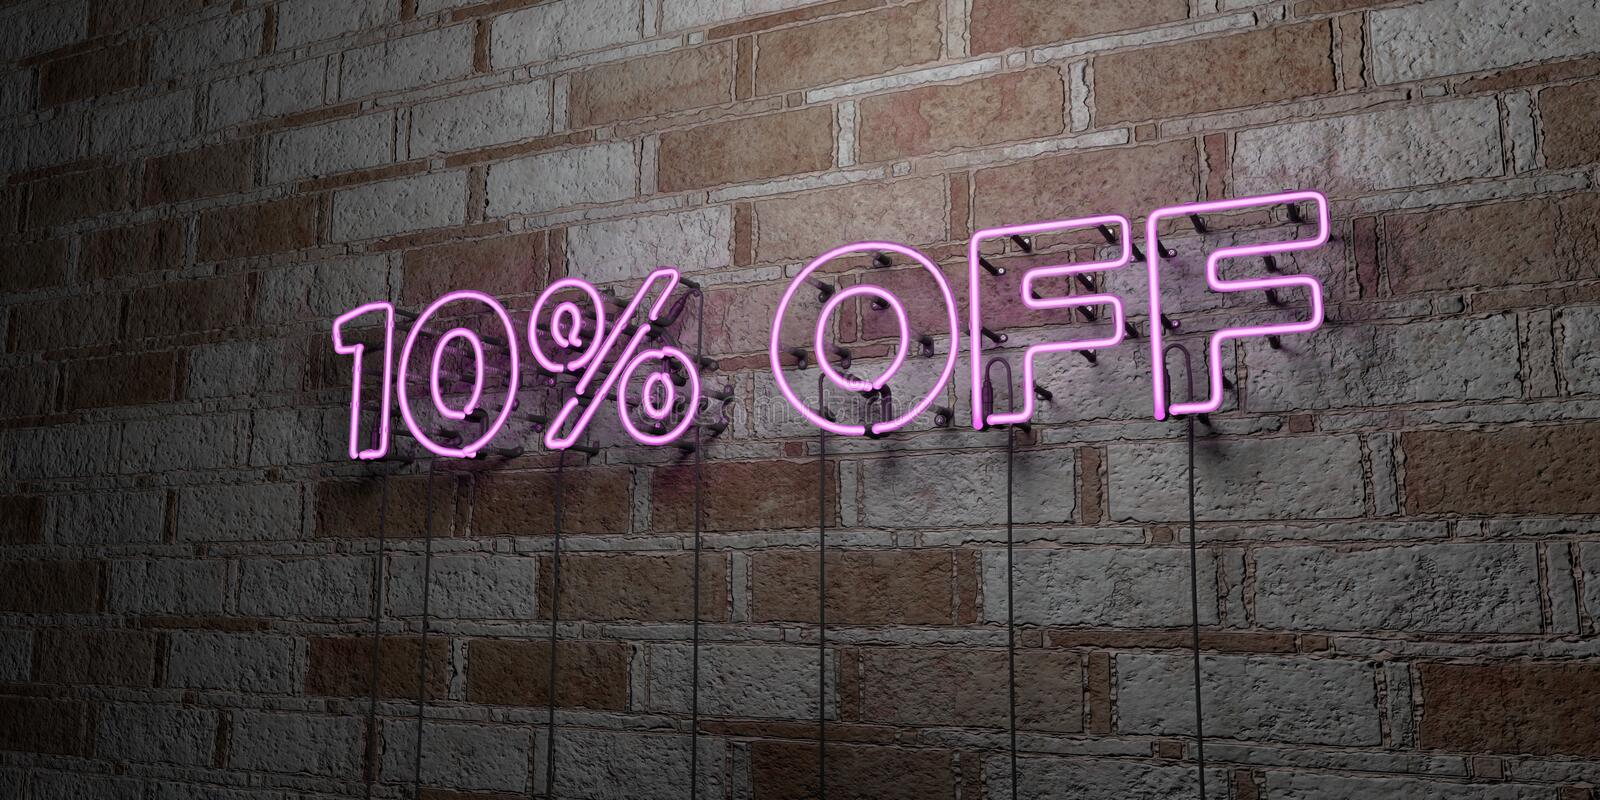 10% OFF - Glowing Neon Sign on stonework wall - 3D rendered royalty free stock illustration. Can be used for online banner ads and direct mailers vector illustration